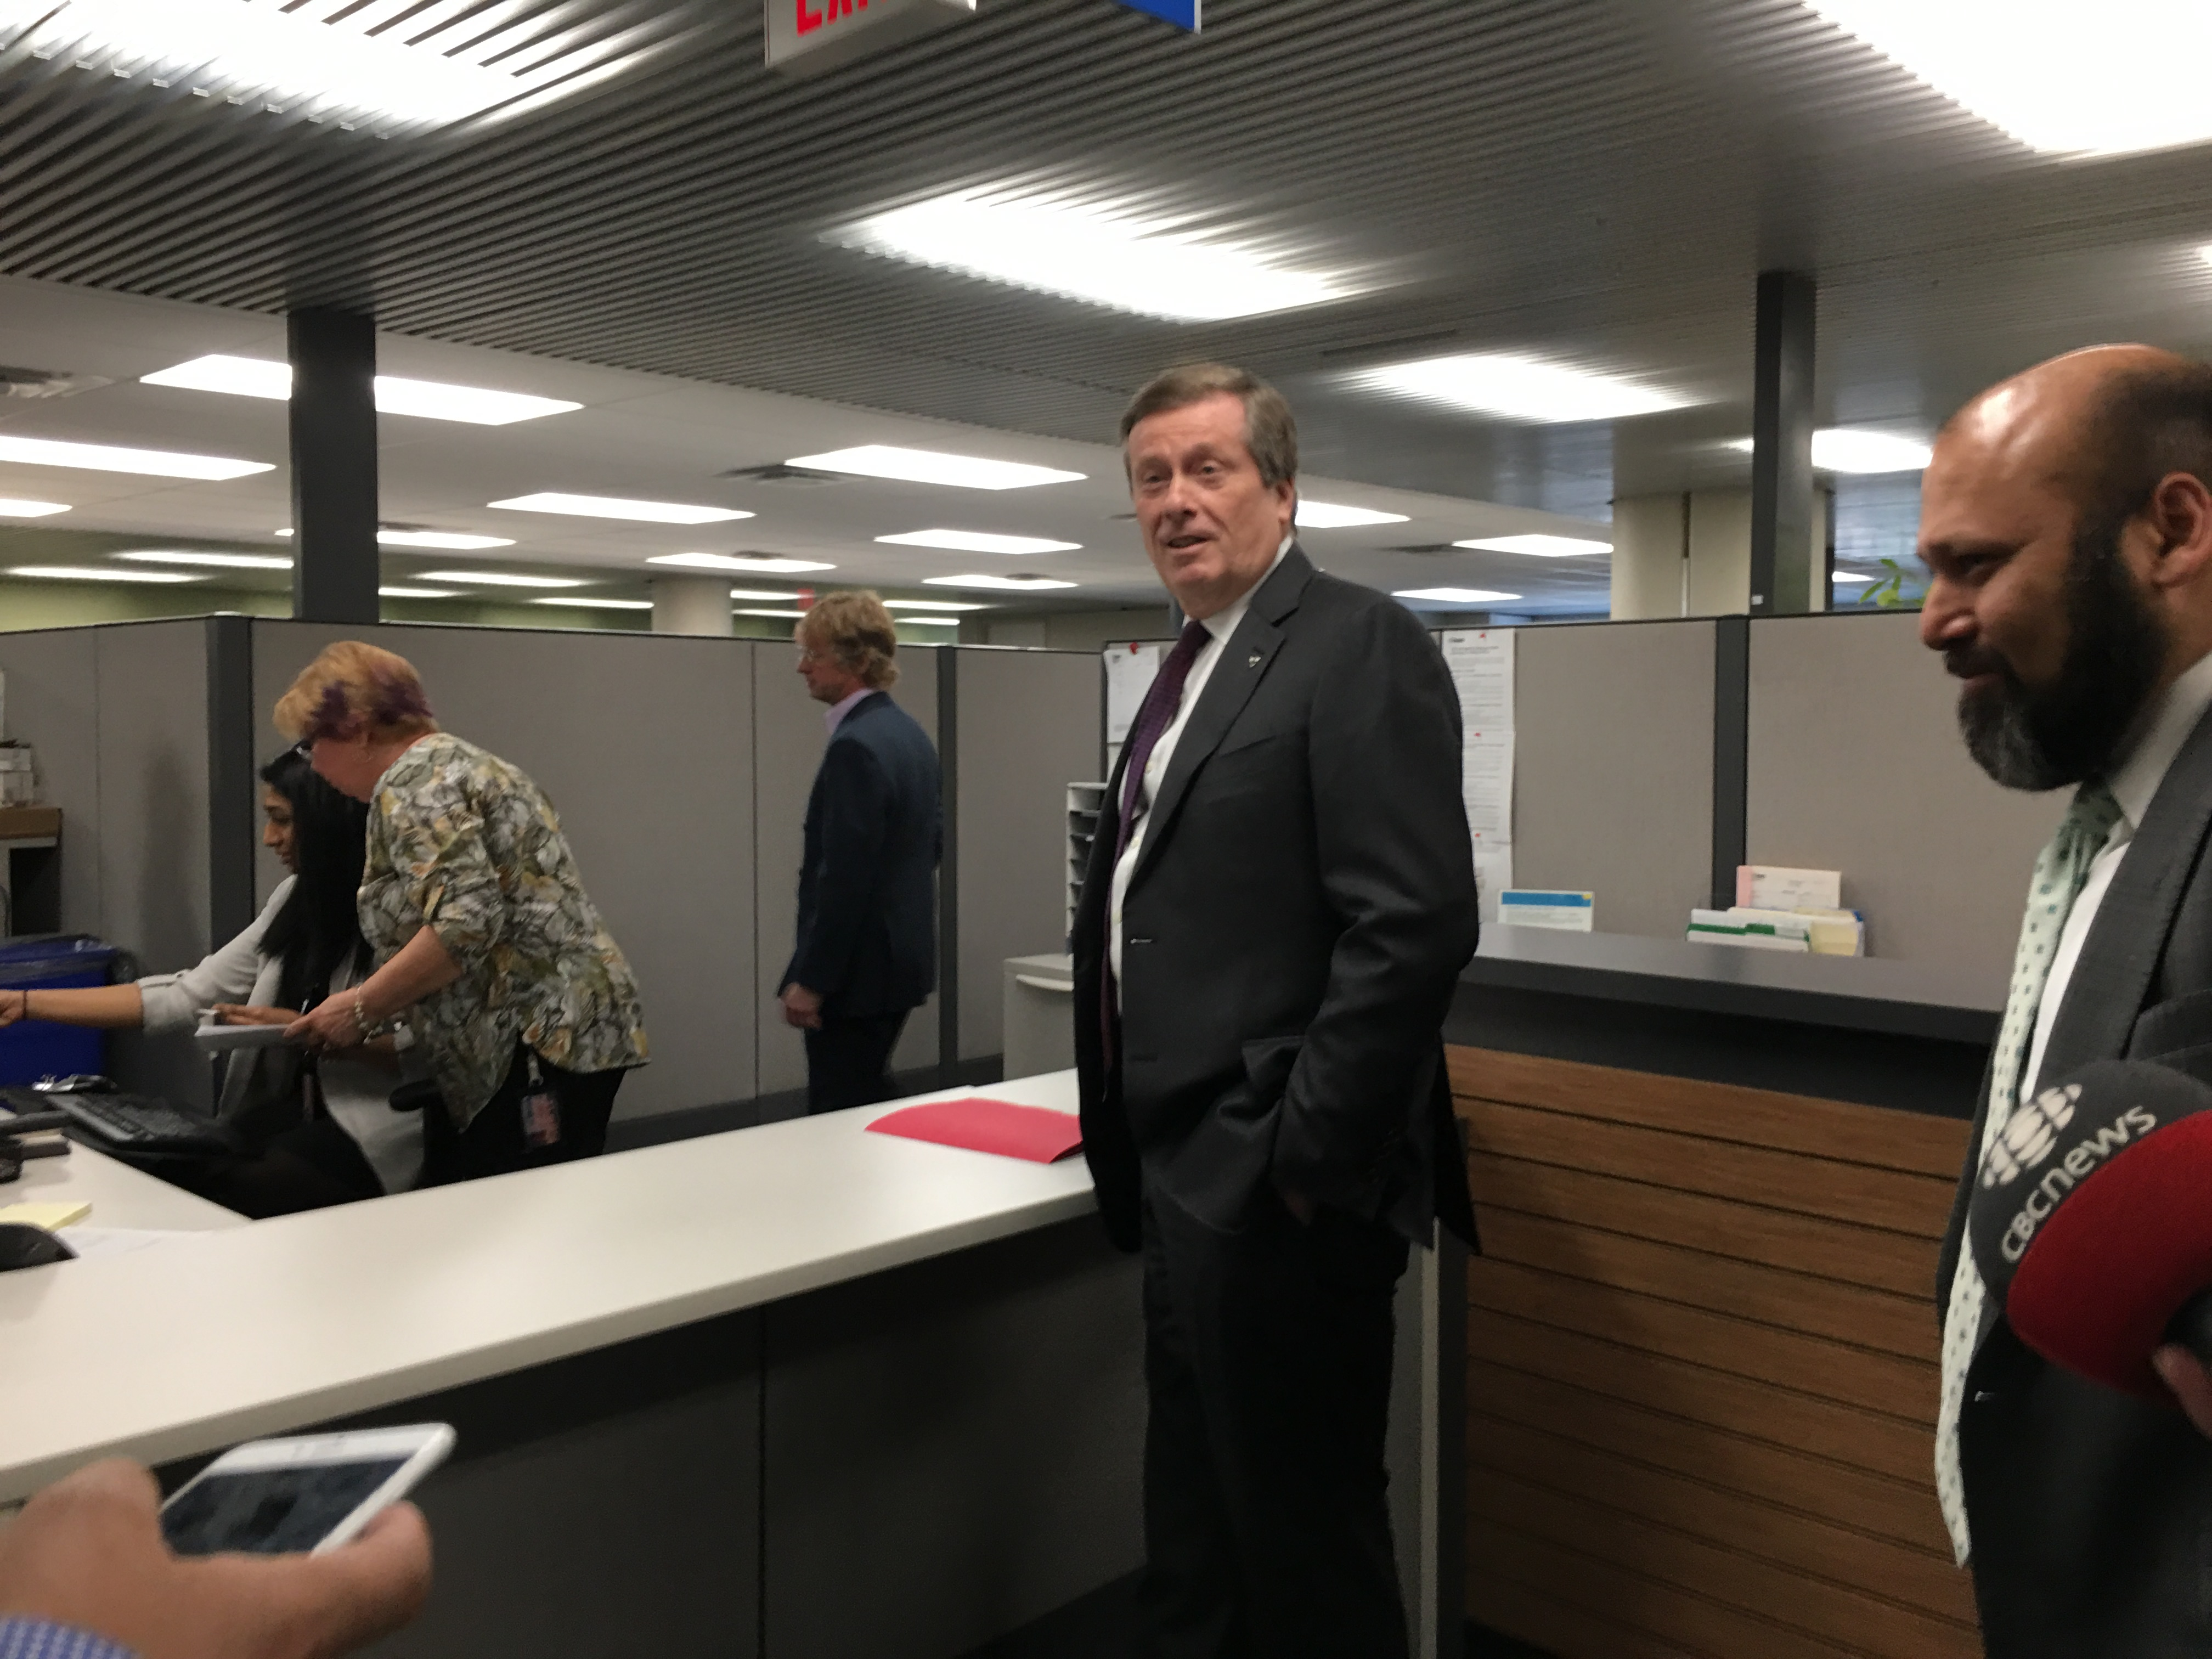 9:44 a.m., Mayor John Tory filing his nomination papers in the election office.